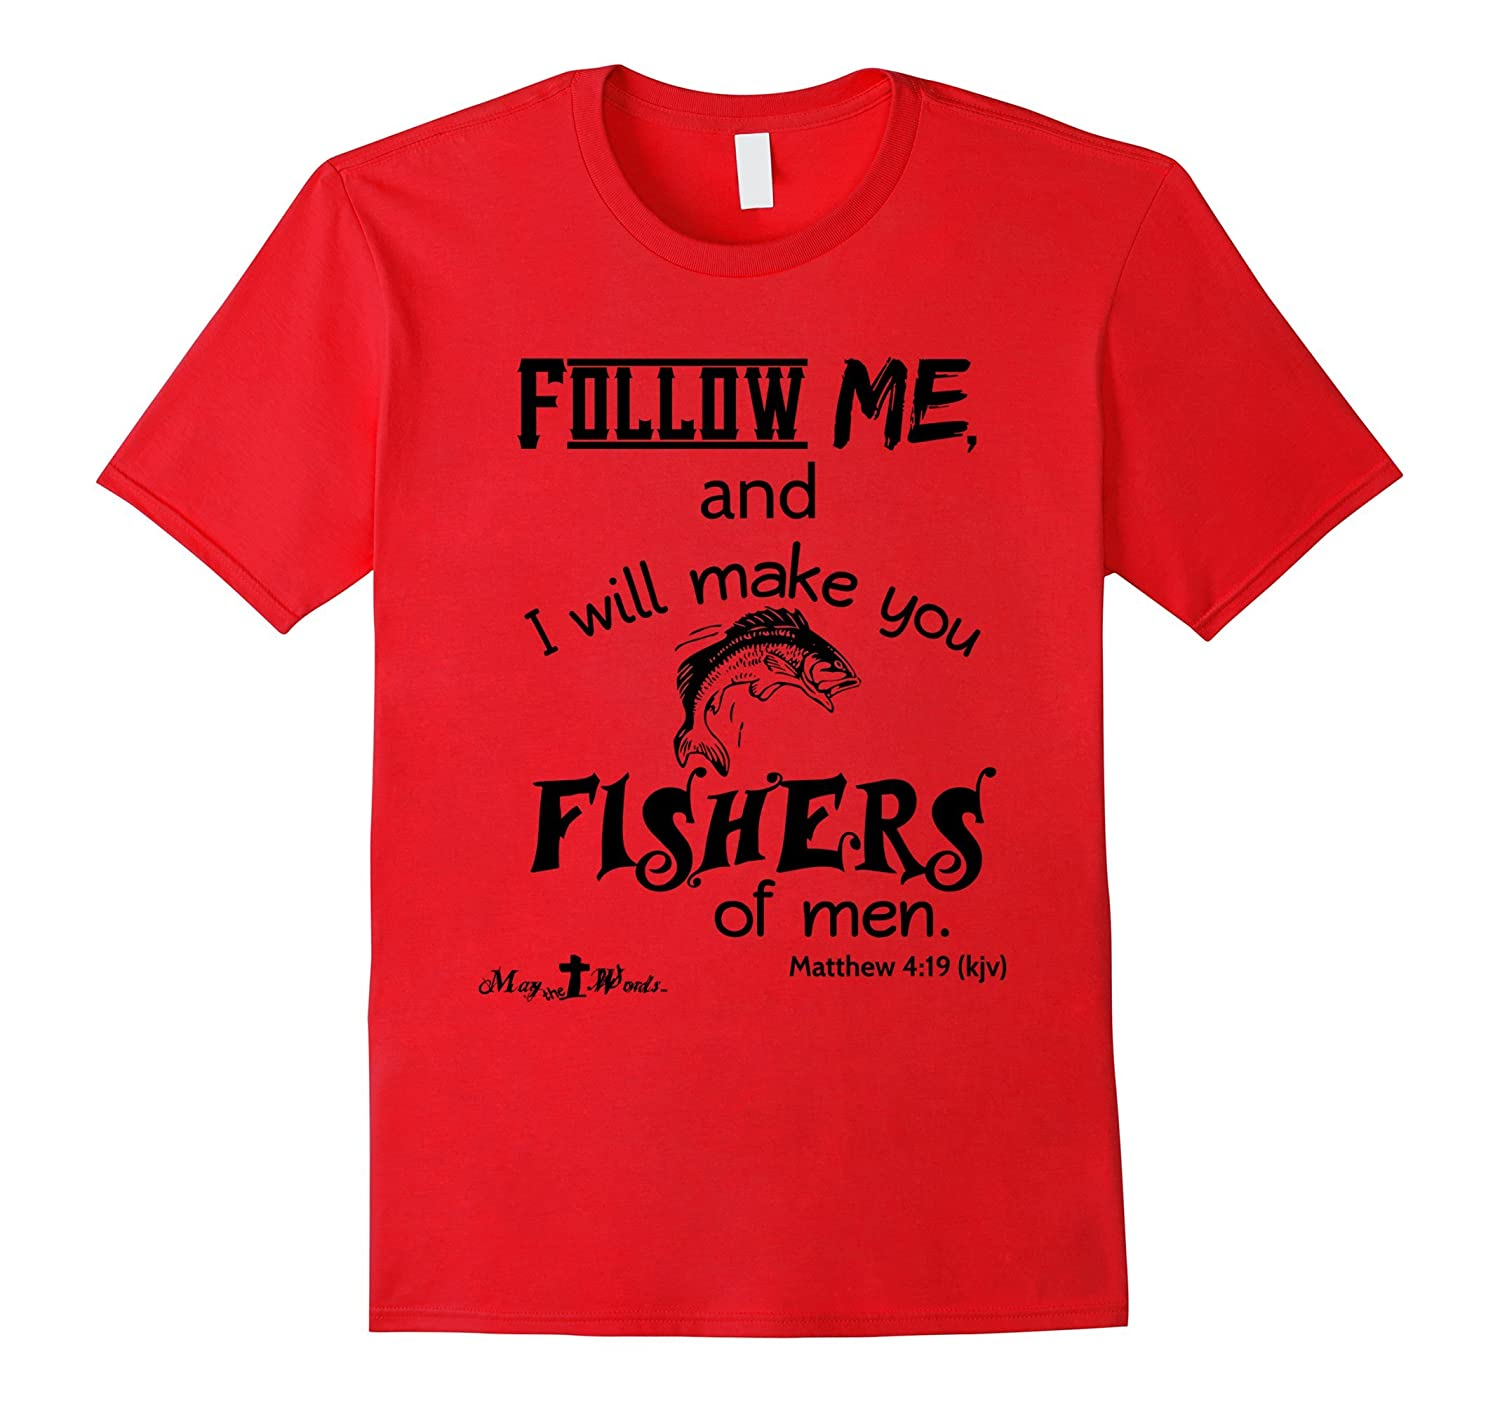 ...fishers of men Matthew 4:19 kjv tshirt-FL